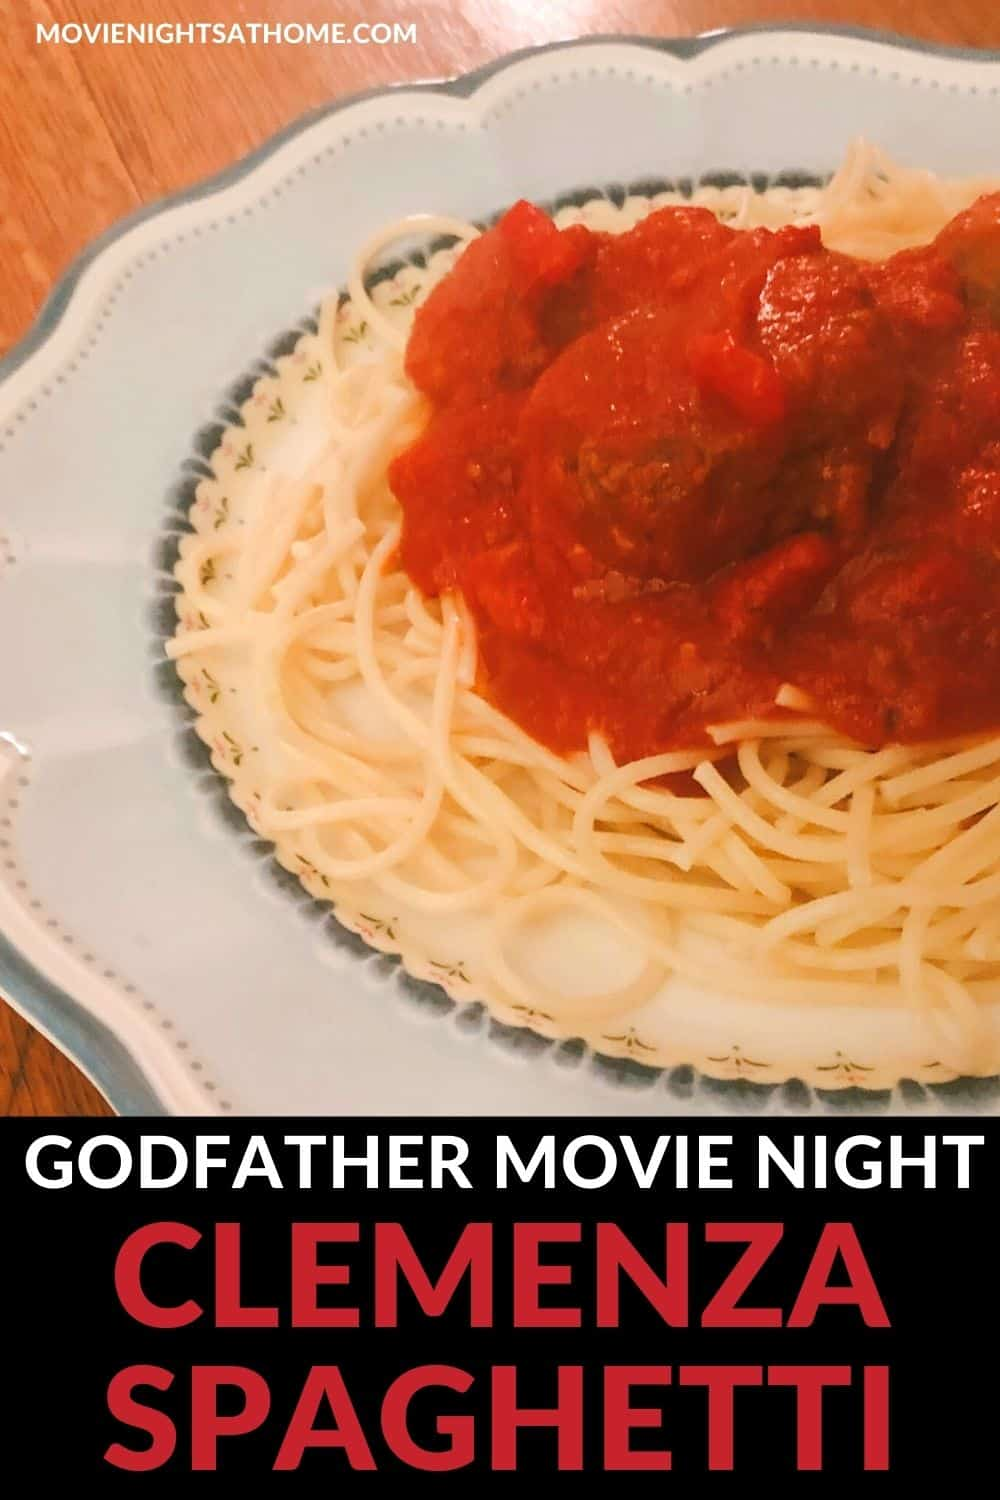 Godfather Clemenza Spaghetti Sauce Recipe from the Godfather